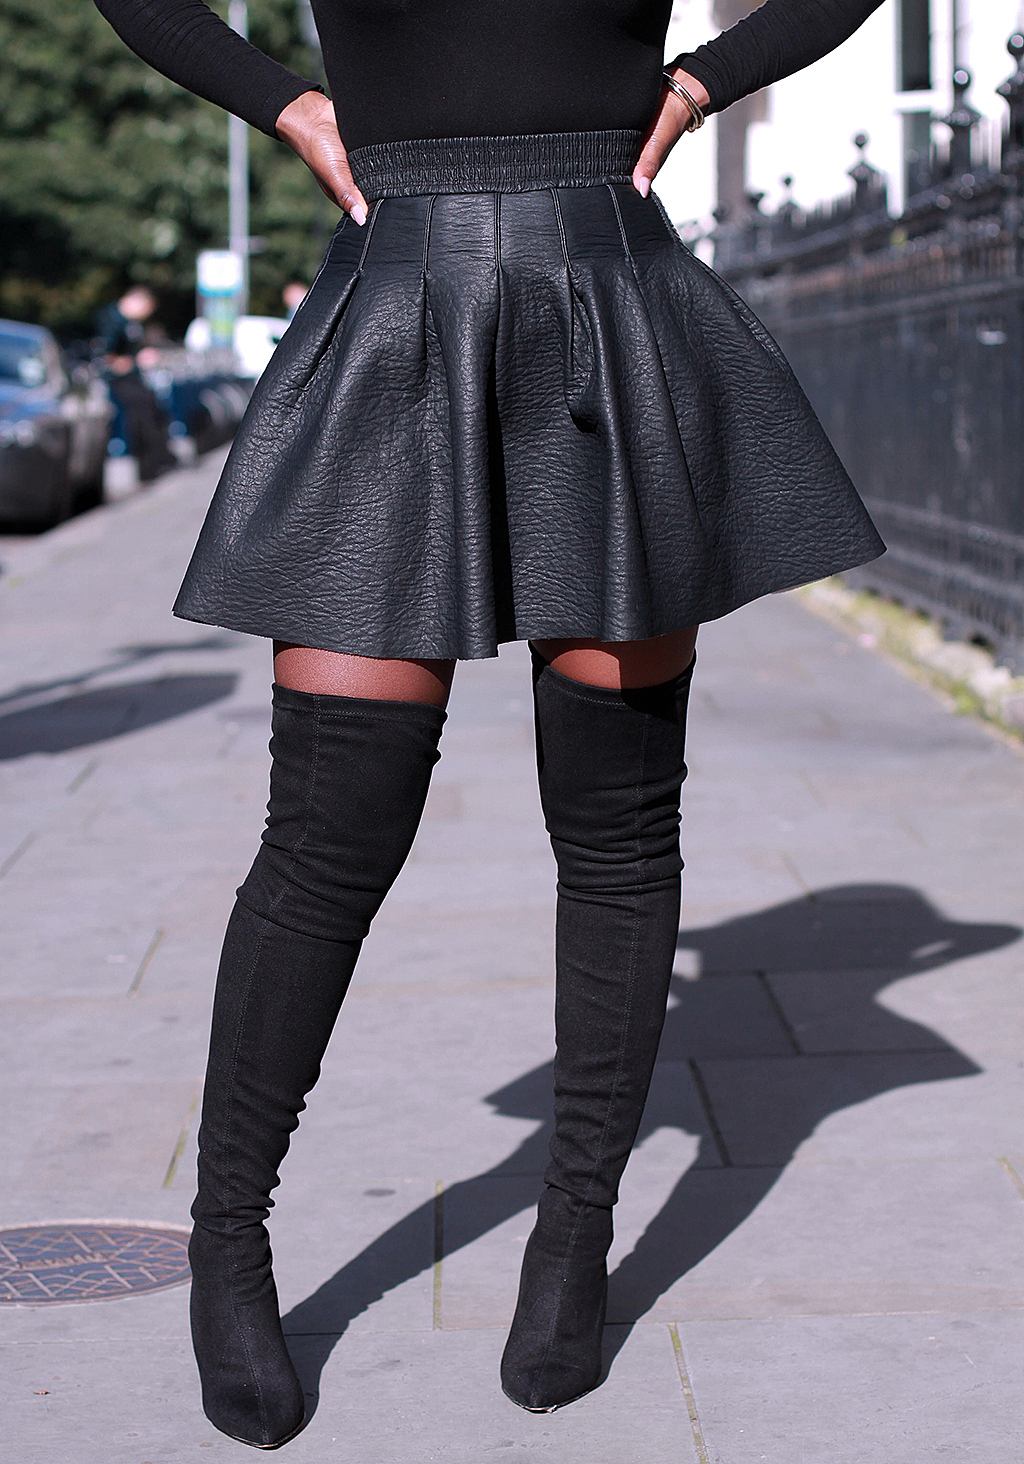 Size 12 Thigh High Boots